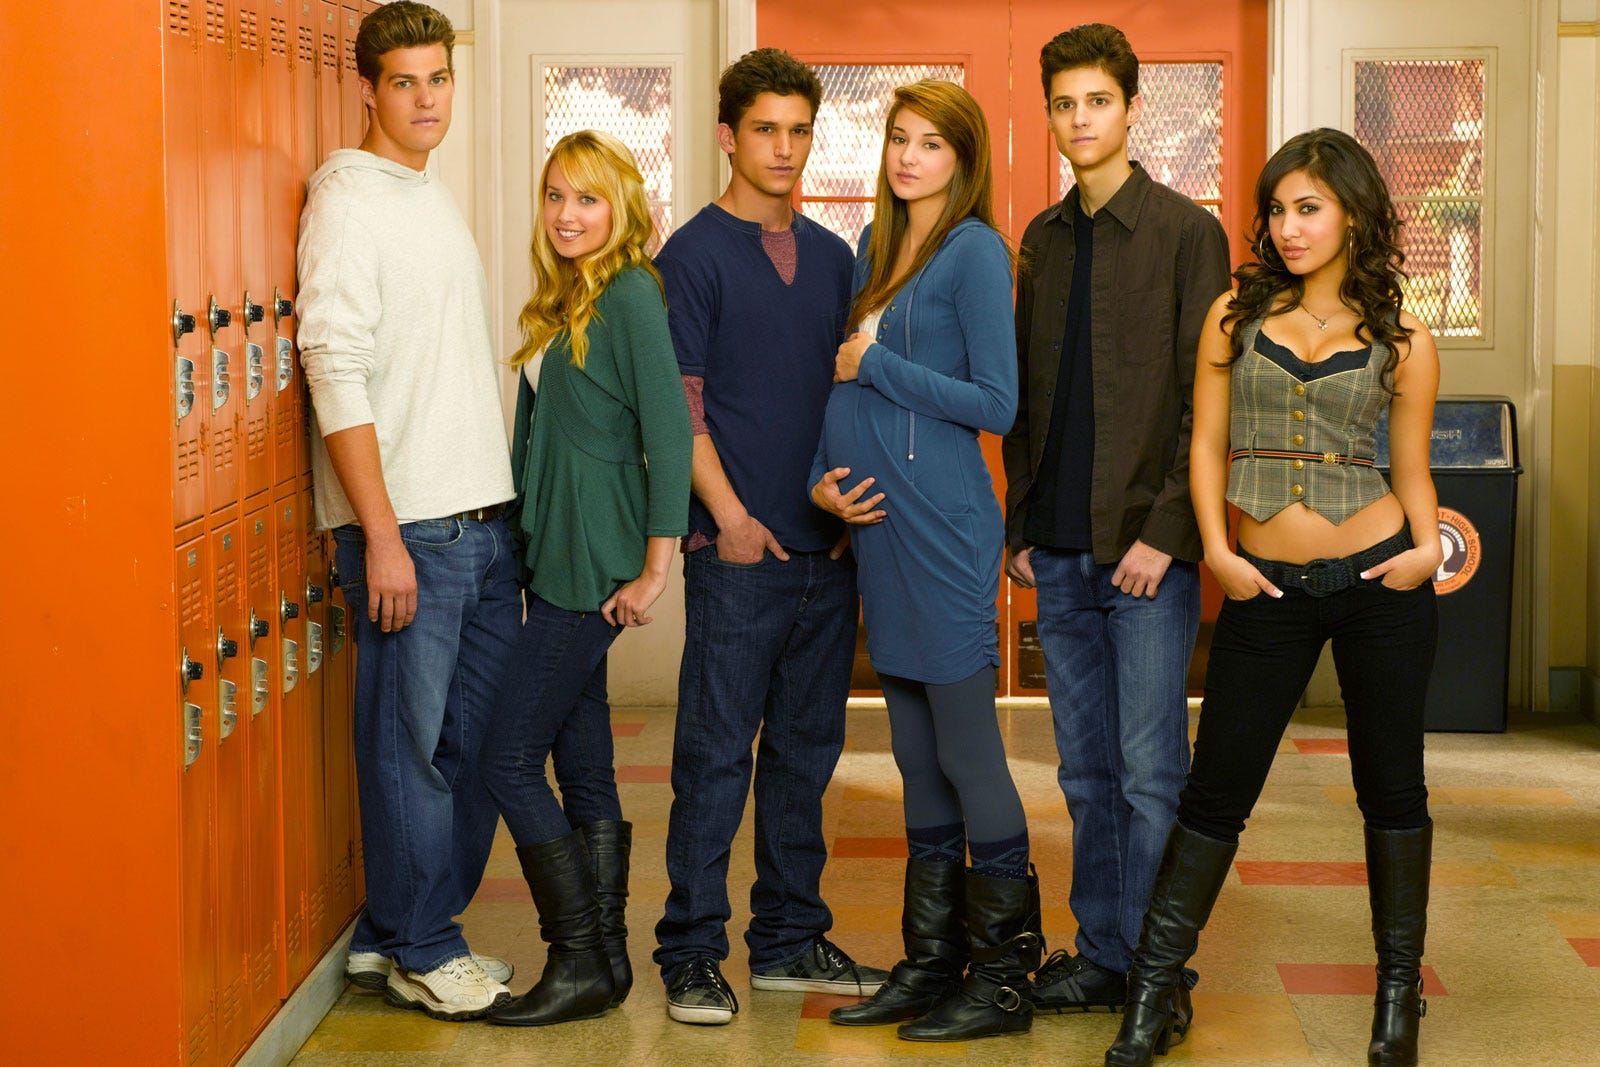 The secret life of the american teenager cast hookup